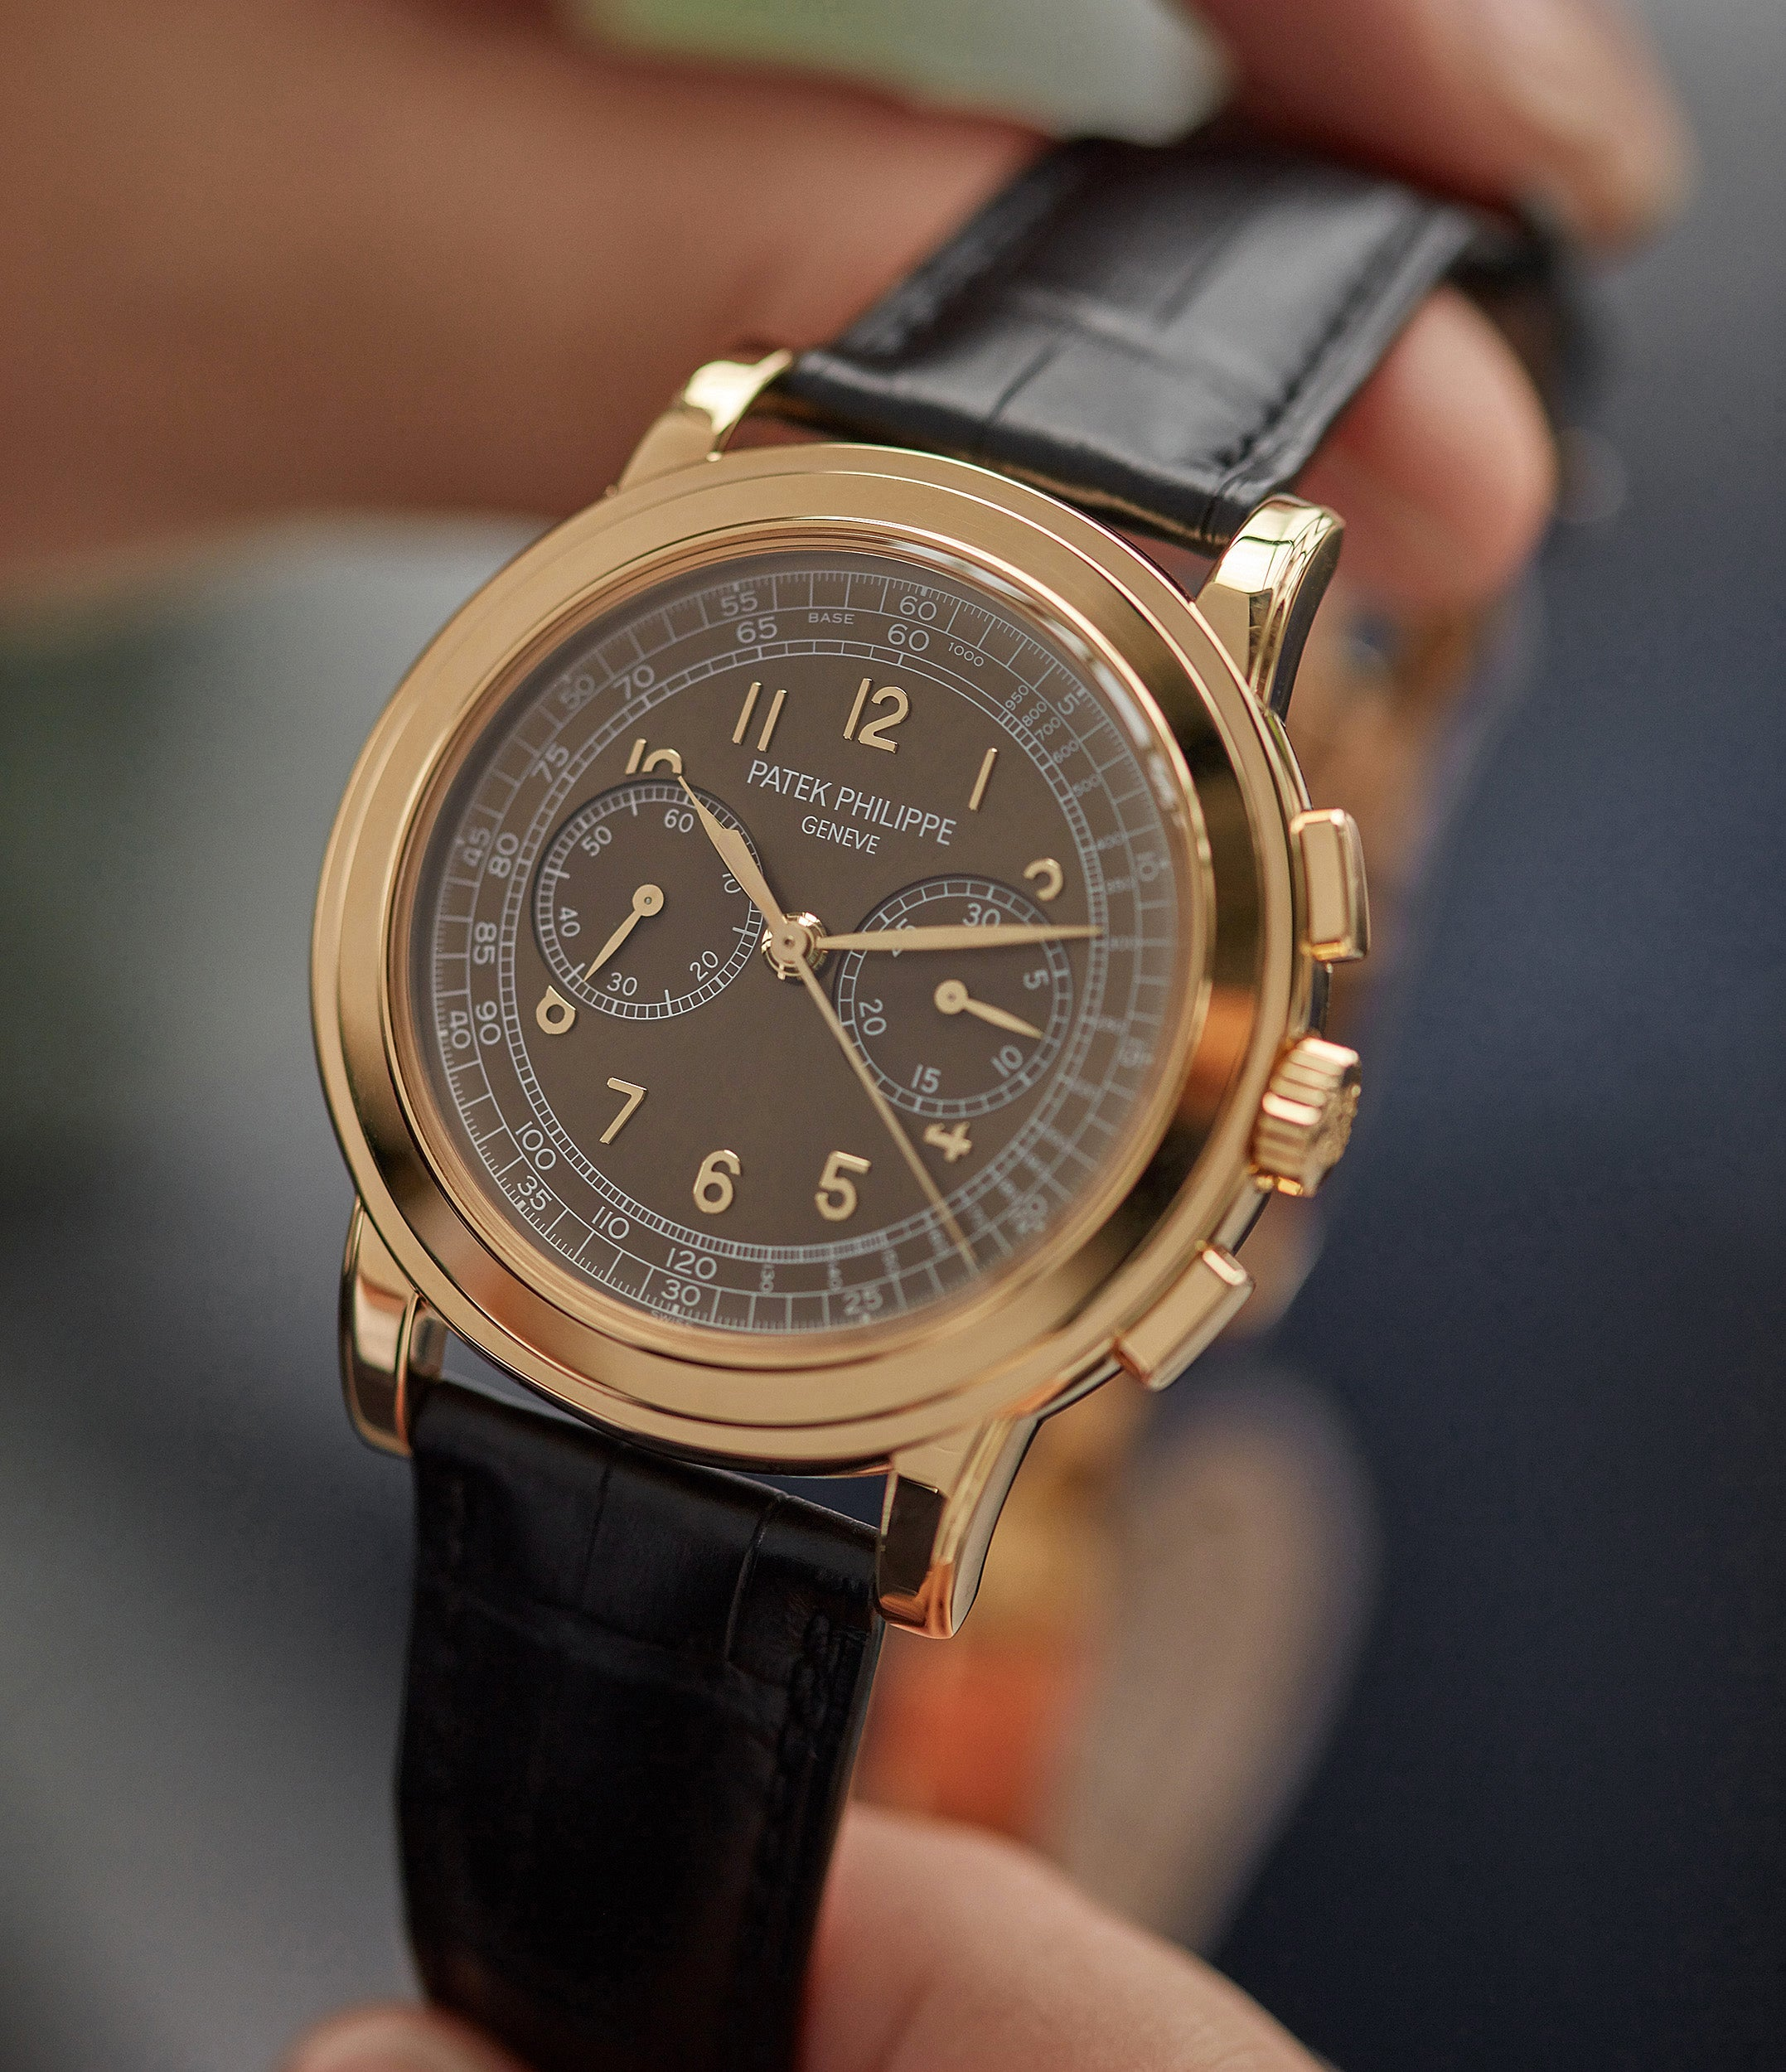 find Patek Philippe 5070J-012 Saatchi Edition Chronograph brown dial yellow gold watch for sale online at A Collected Man London UK specialist of rare watches